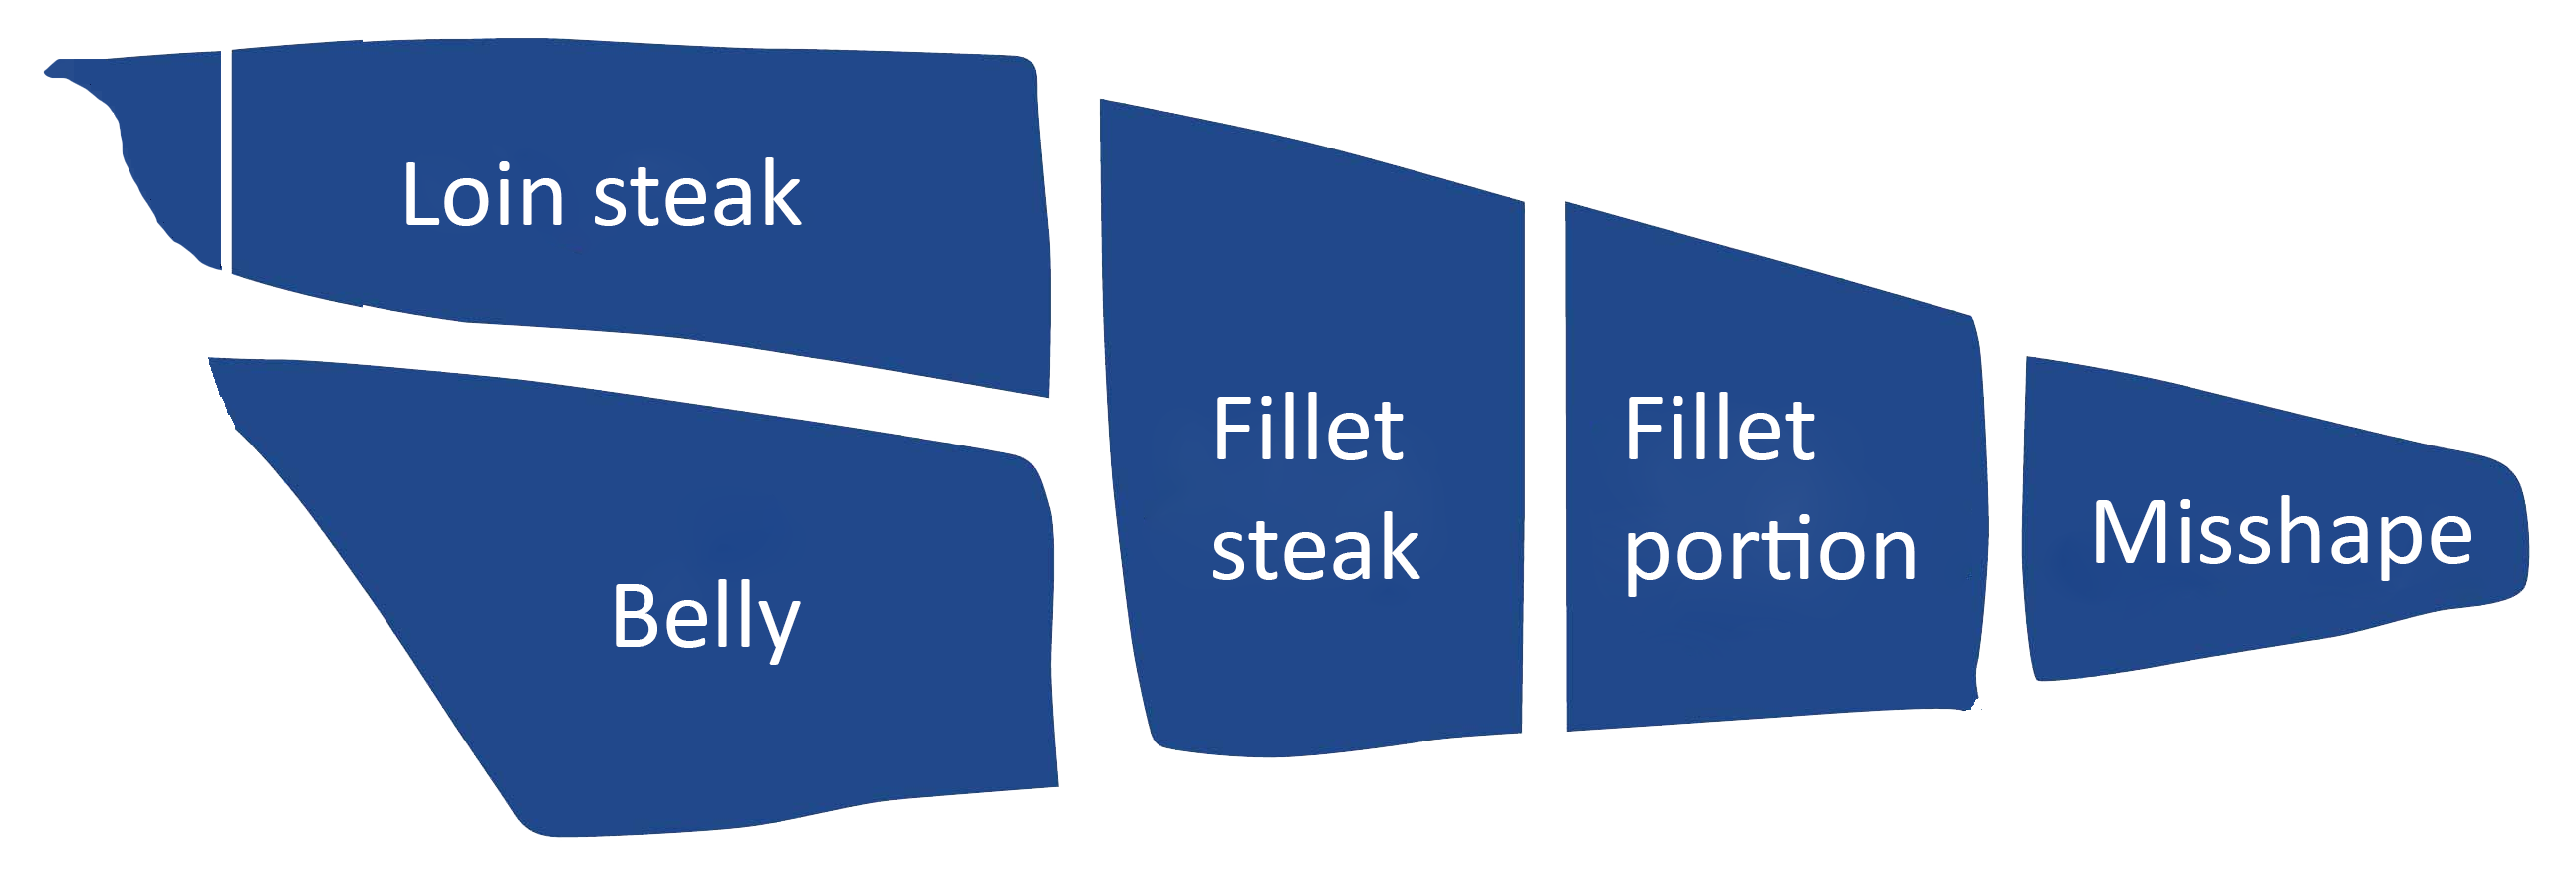 Fish-term-graphic-with-loin